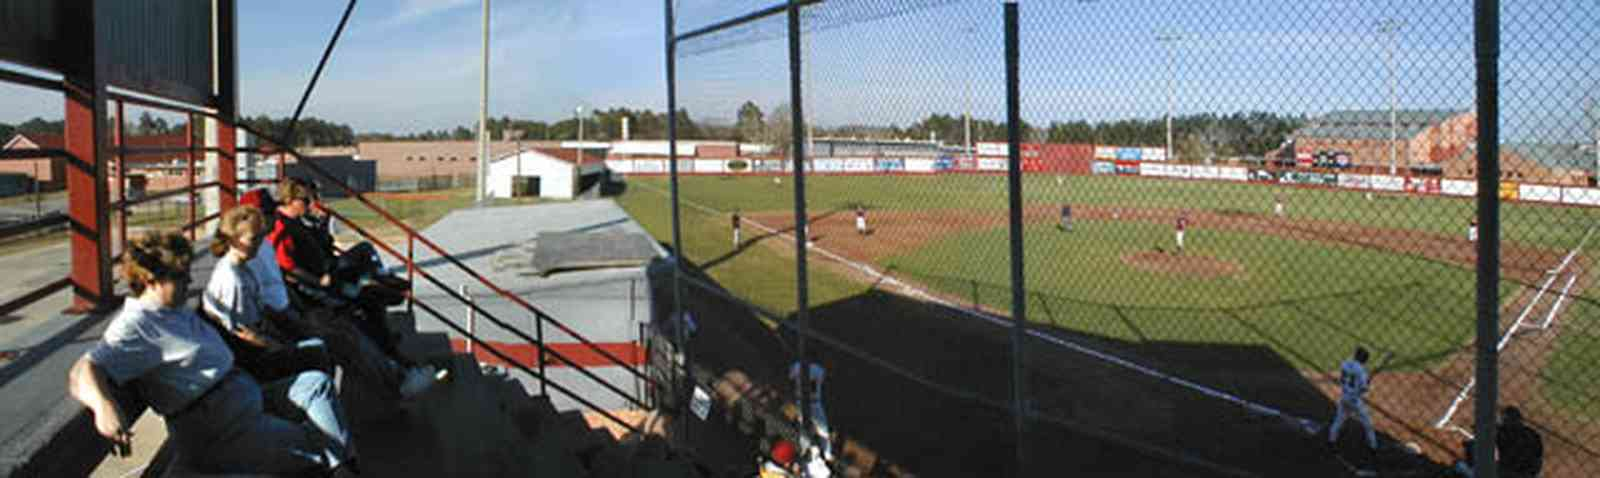 Pensacola:-Tate-High-School_07.jpg:  baseball stadium, baseball field, audience, escambia county, gonzales